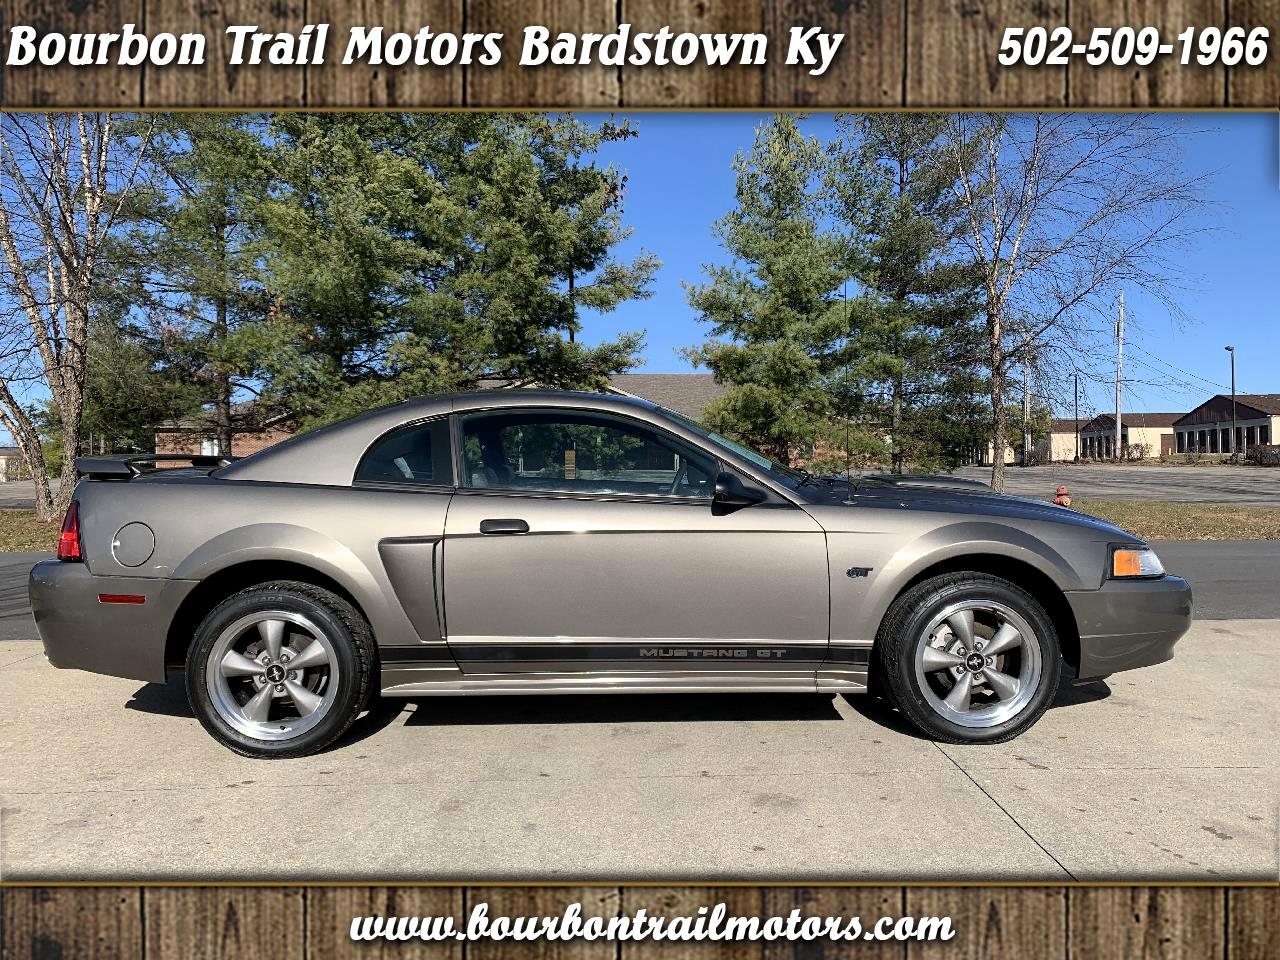 Ford Mustang 2dr Cpe GT Deluxe 2002